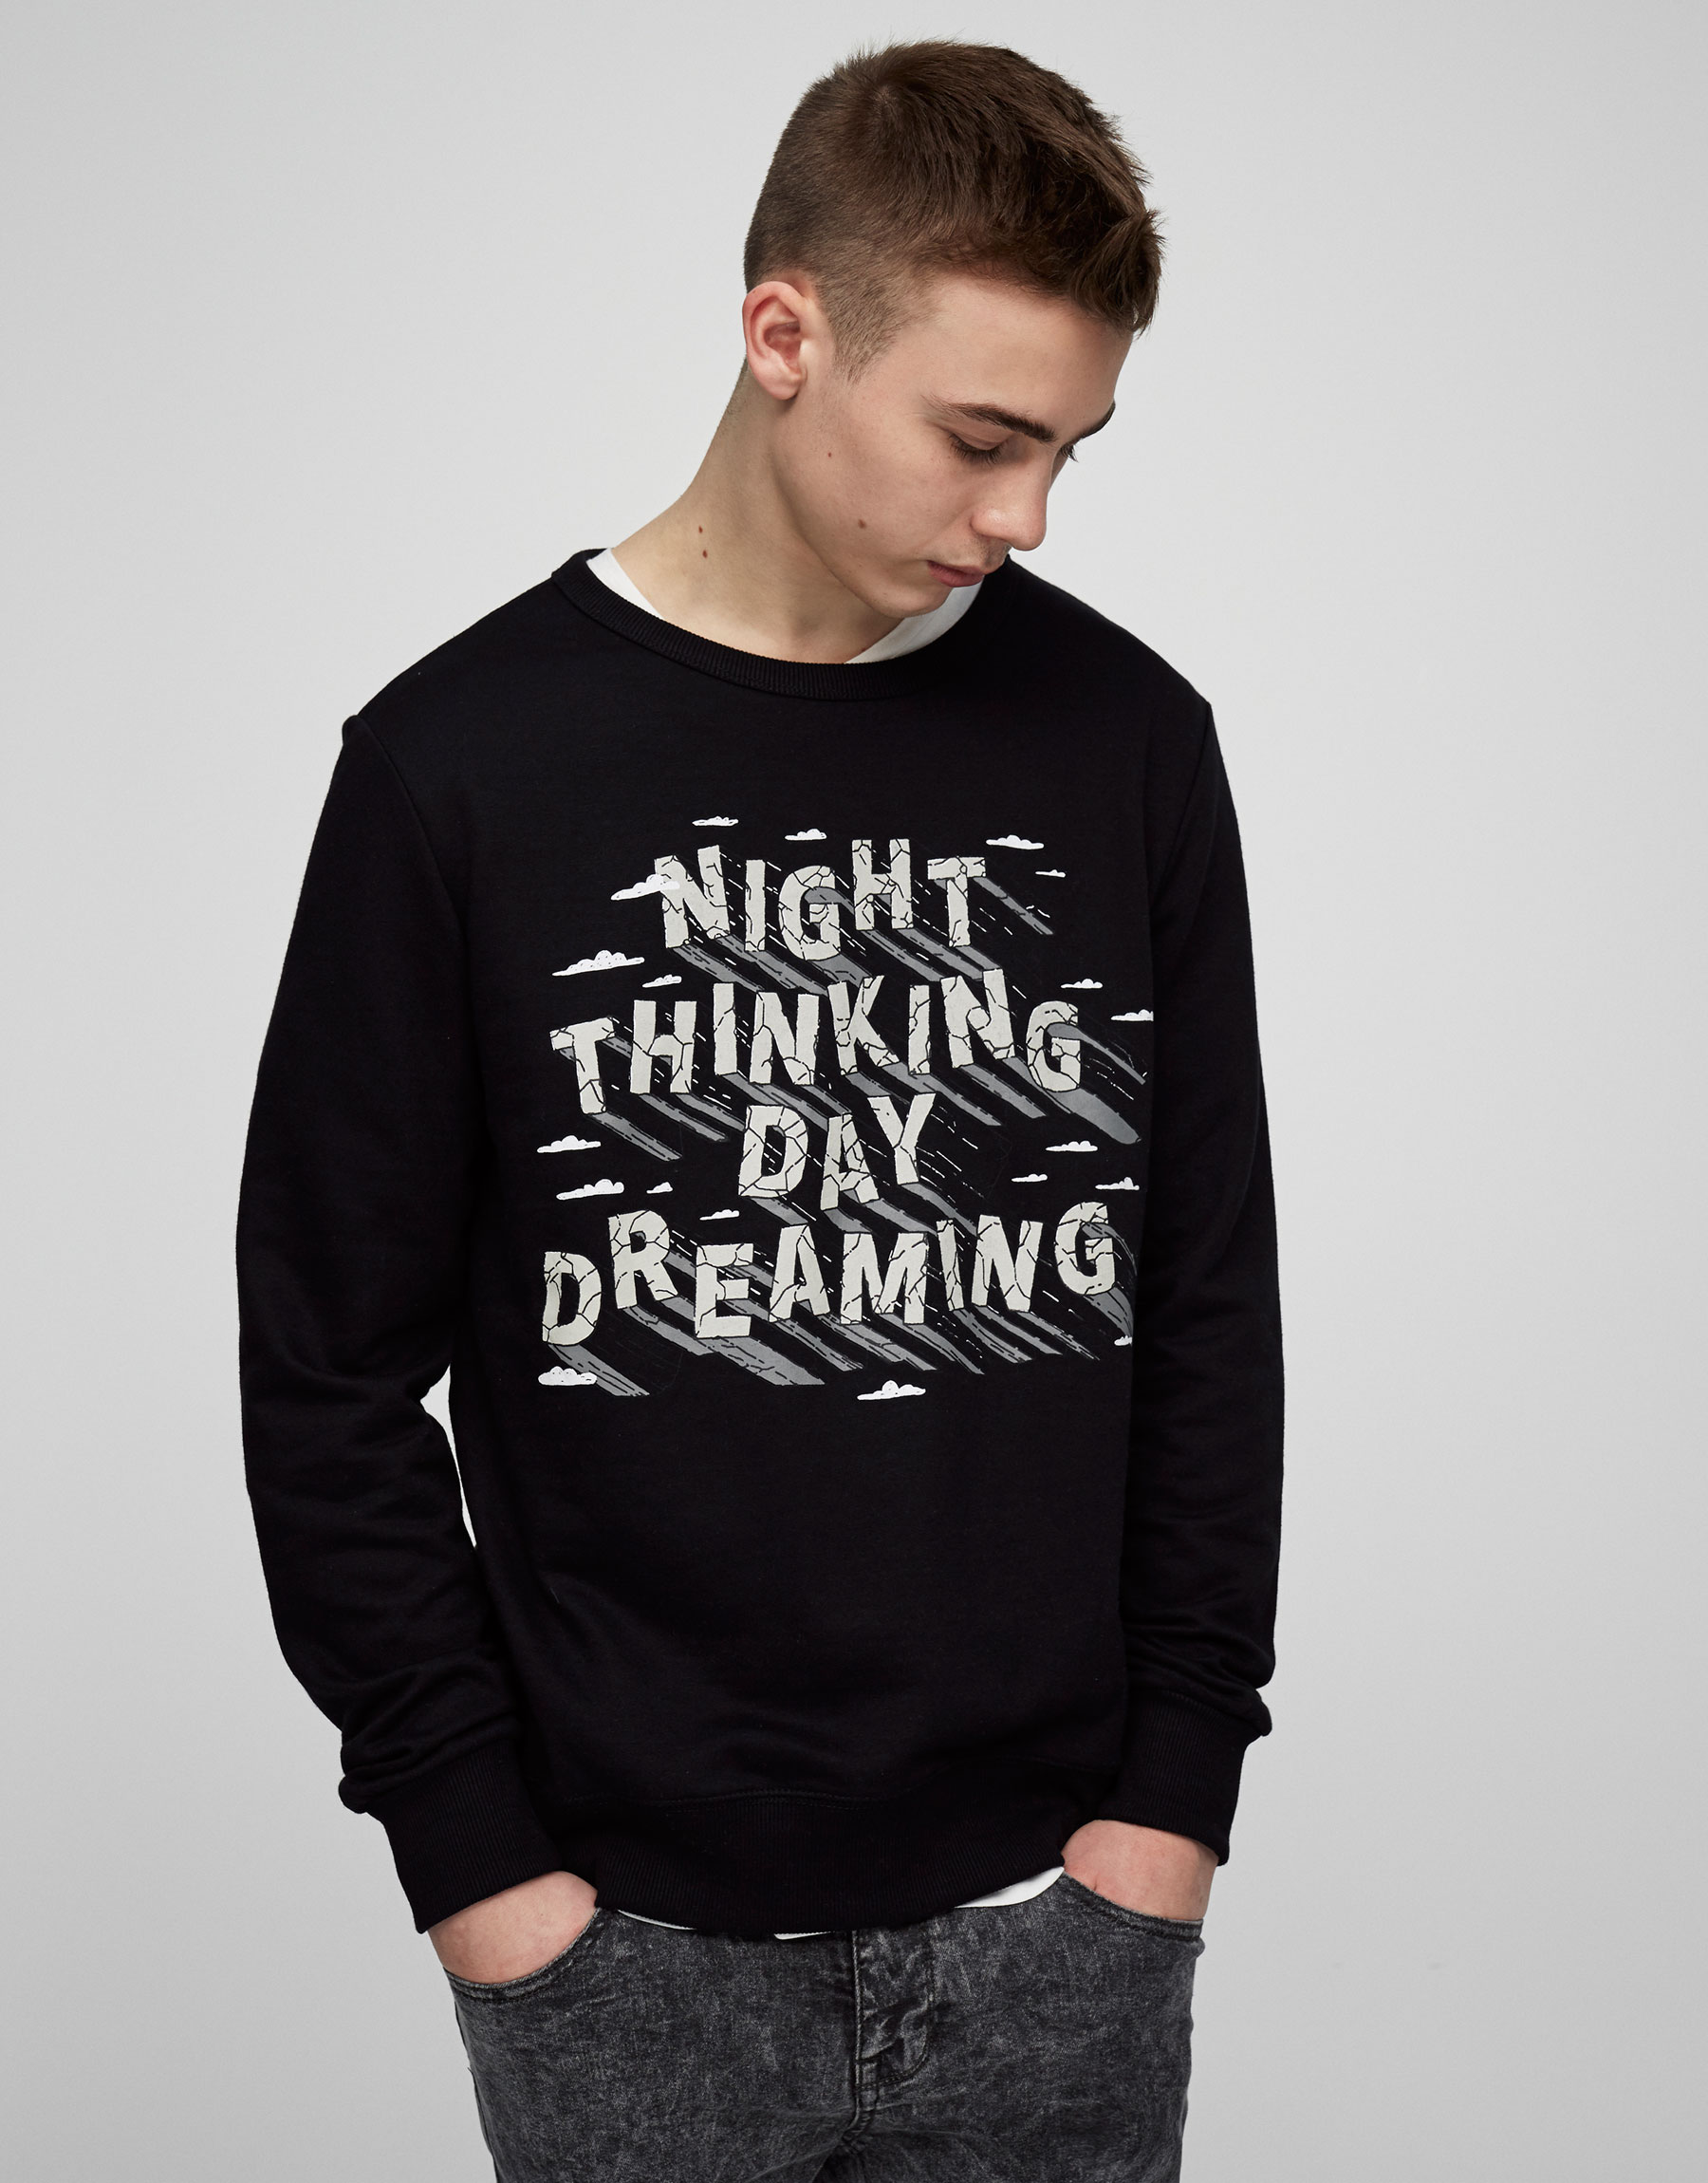 Sweatshirt with front print